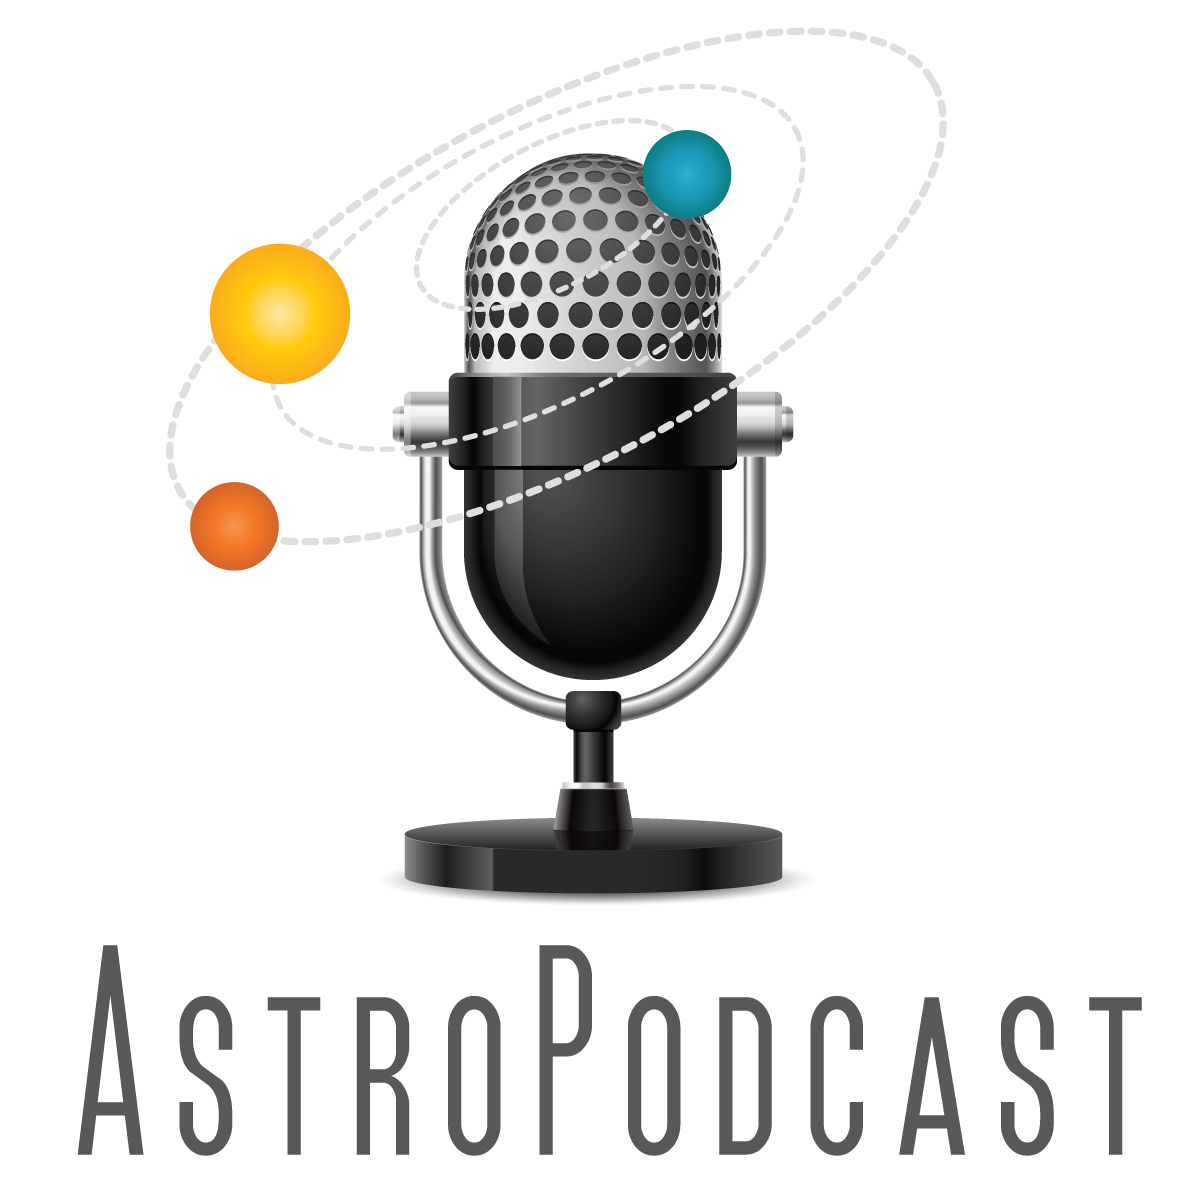 AstroPodcast – Astronomy Podcast